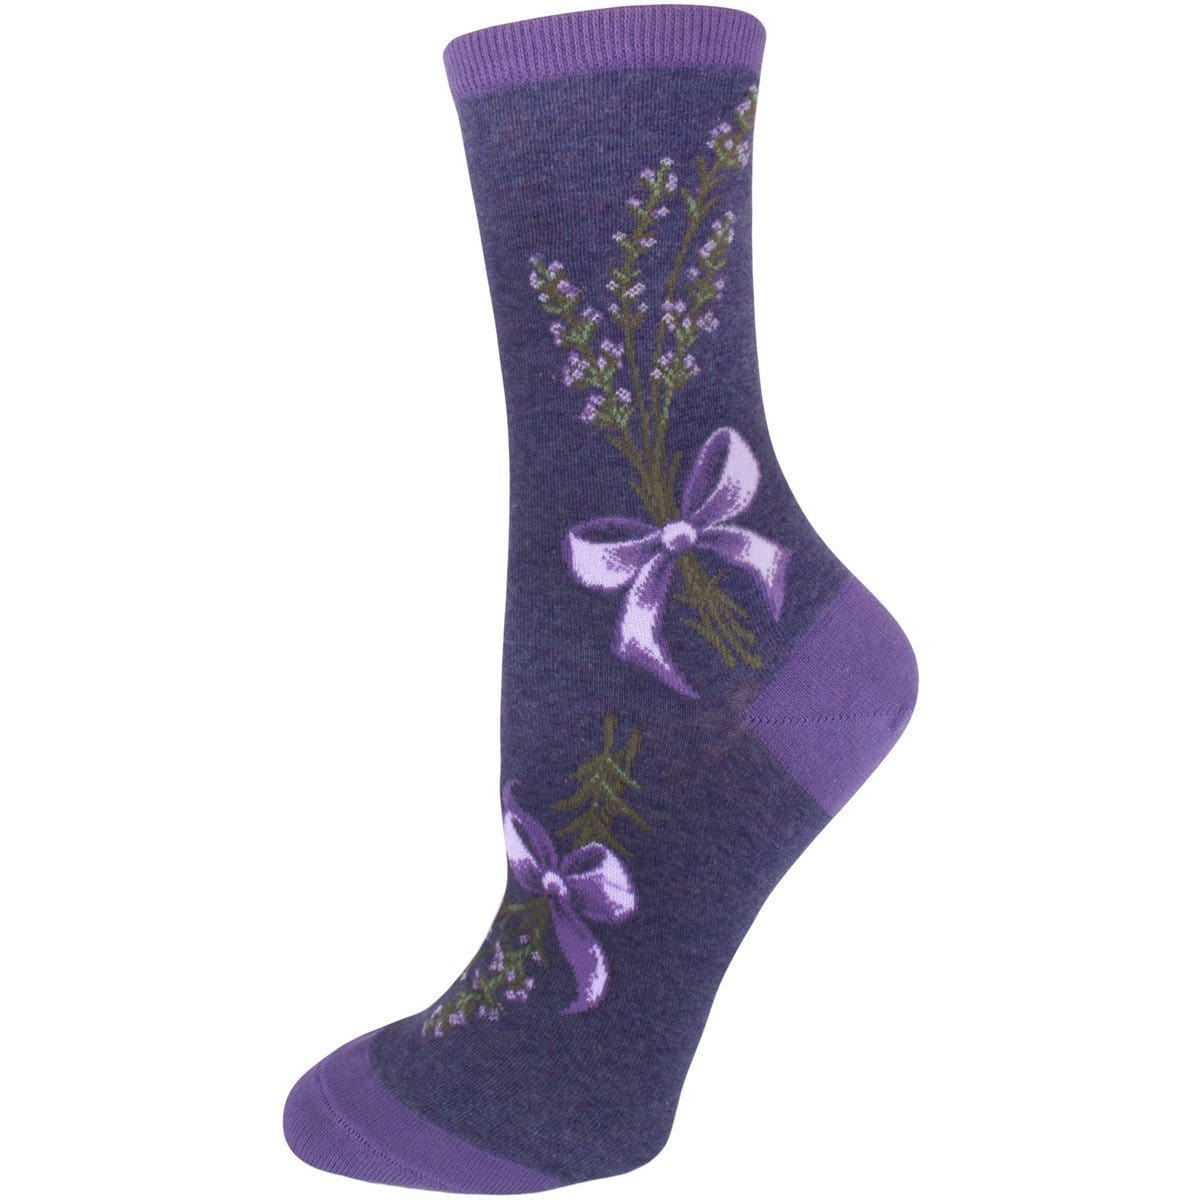 Lavender Harvest Socks Women's Crew Sock purple